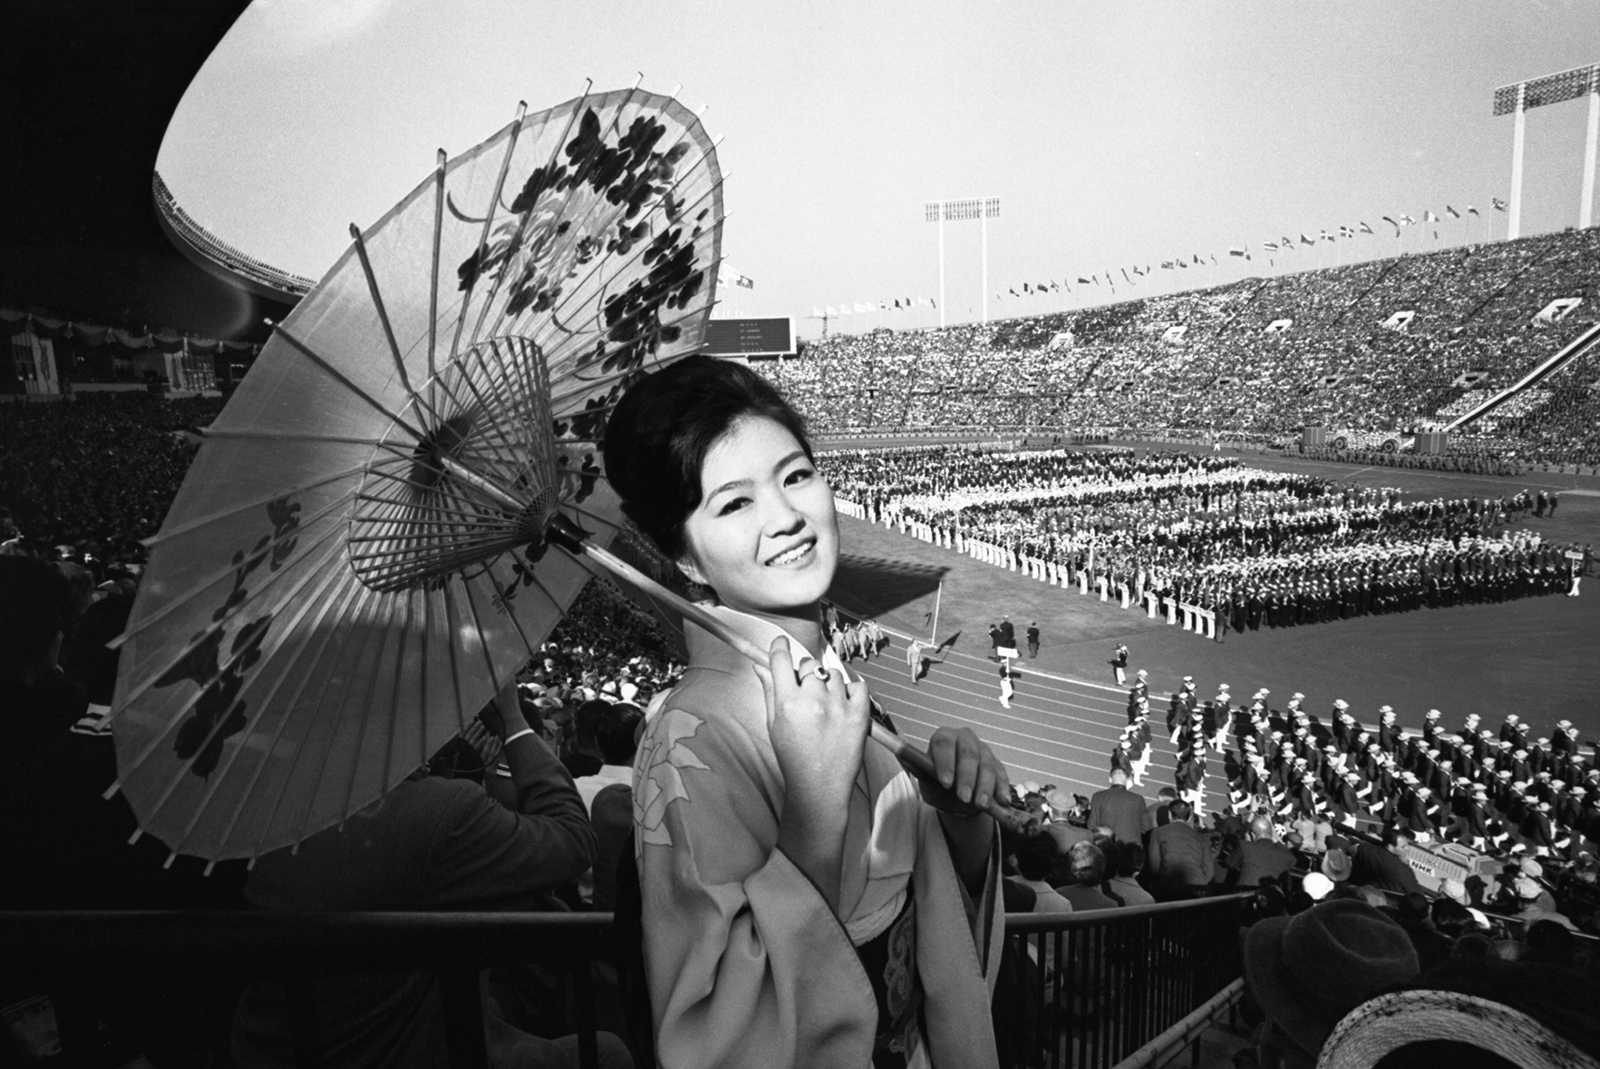 A woman wears traditional clothing at the opening ceremony on October 10, 1964.